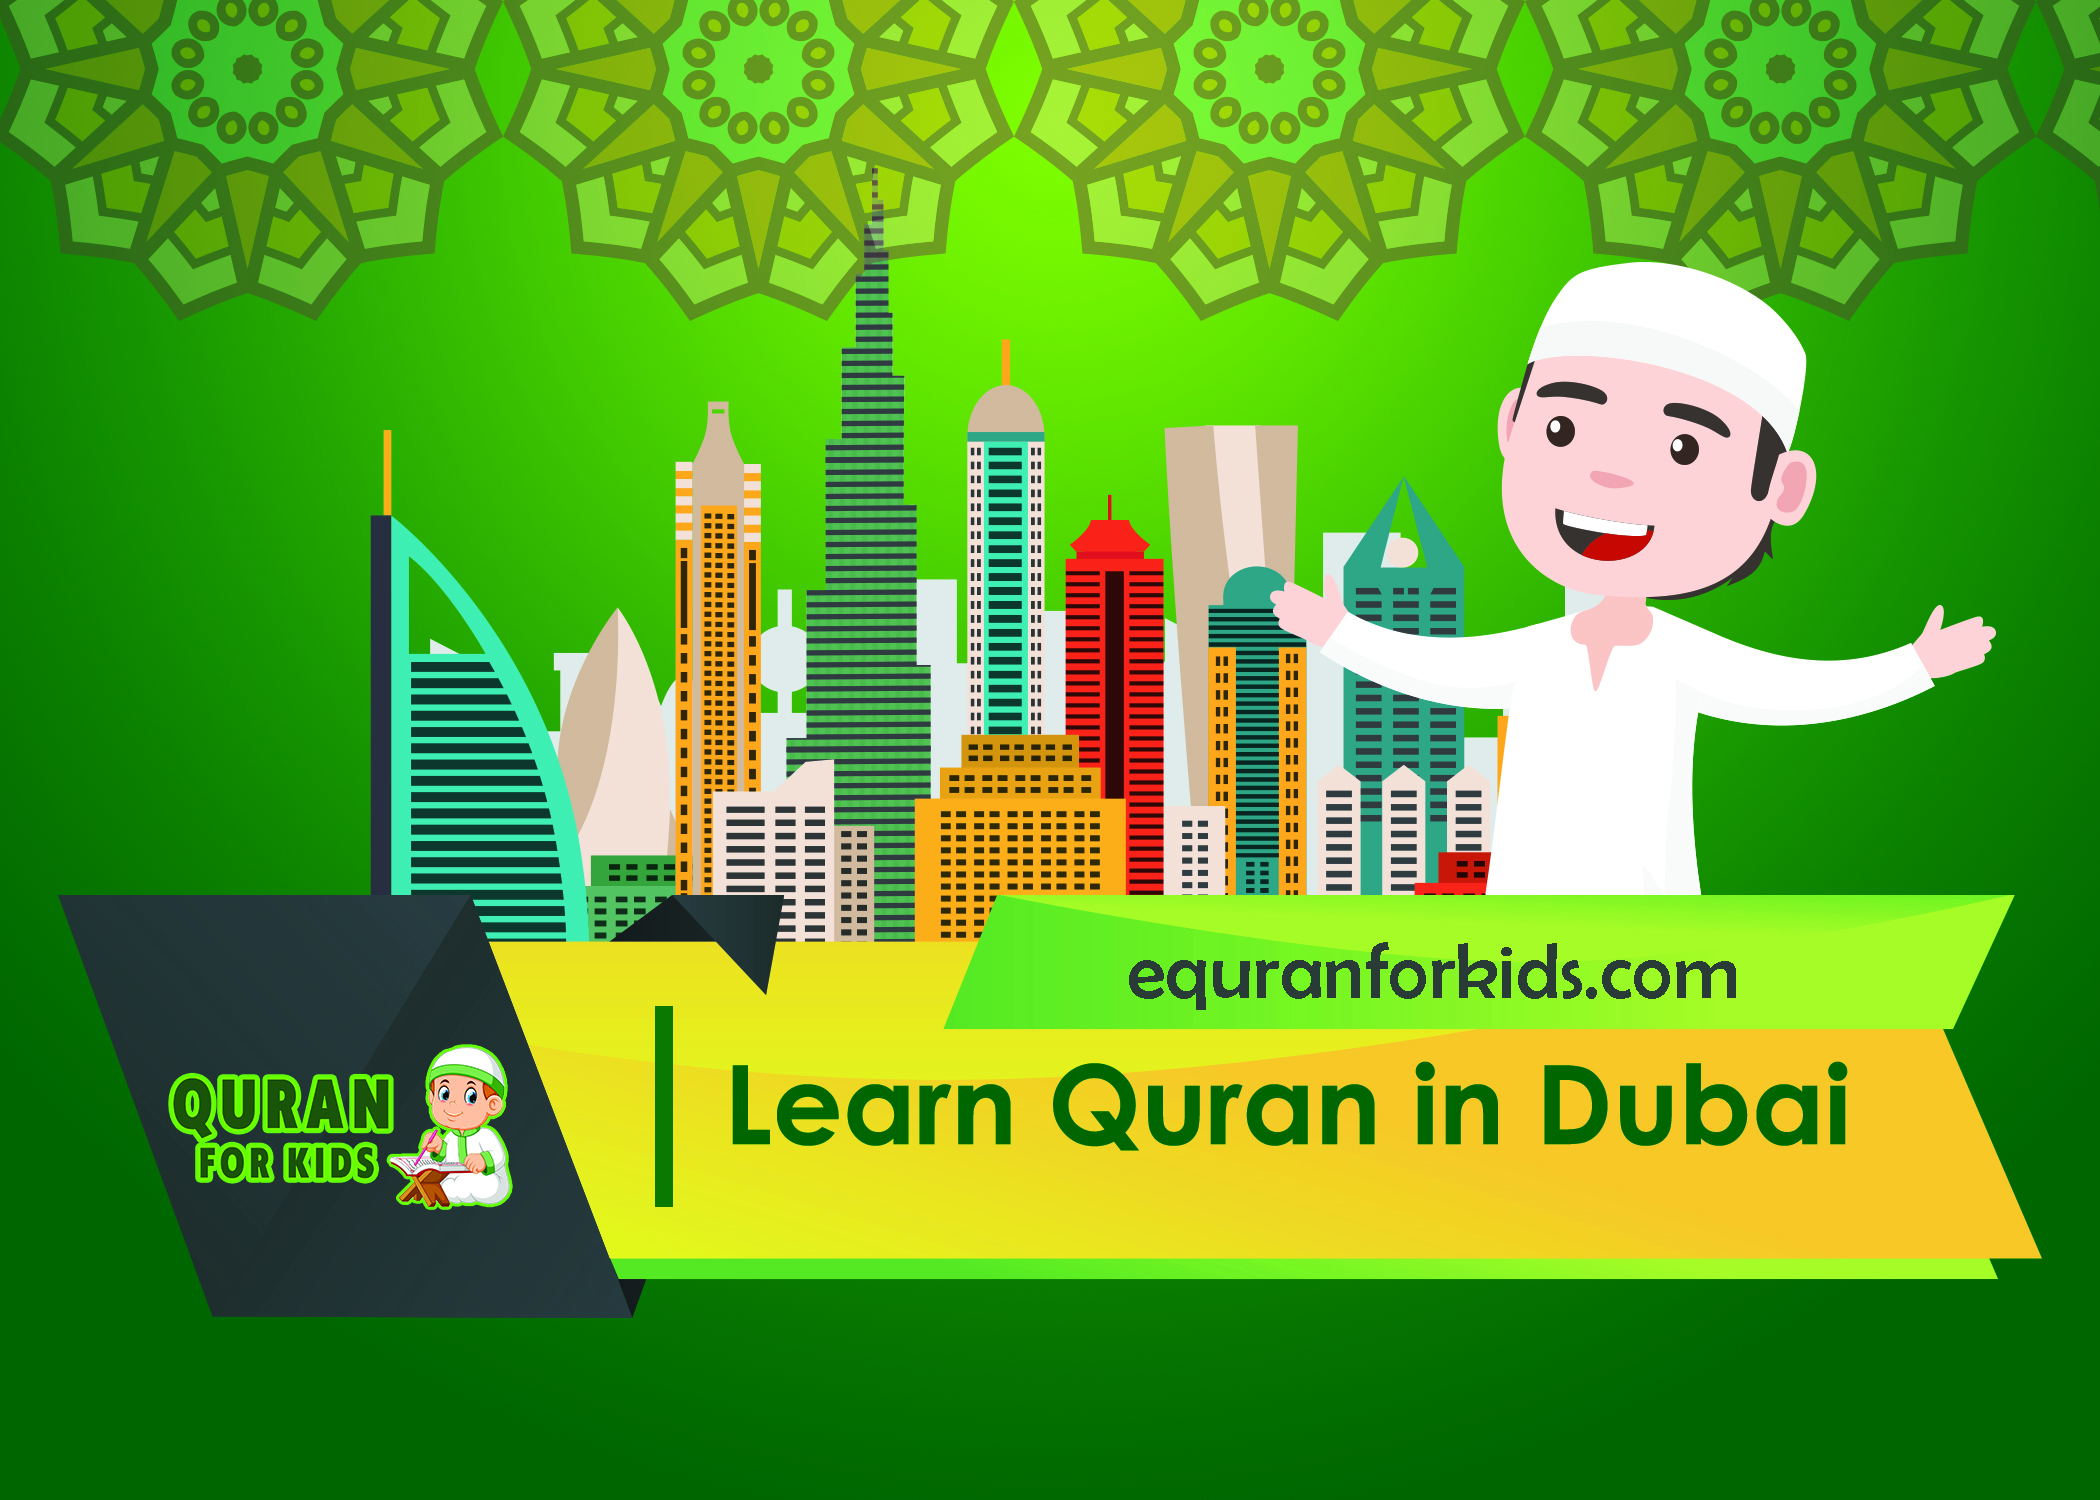 learn quran in dubai